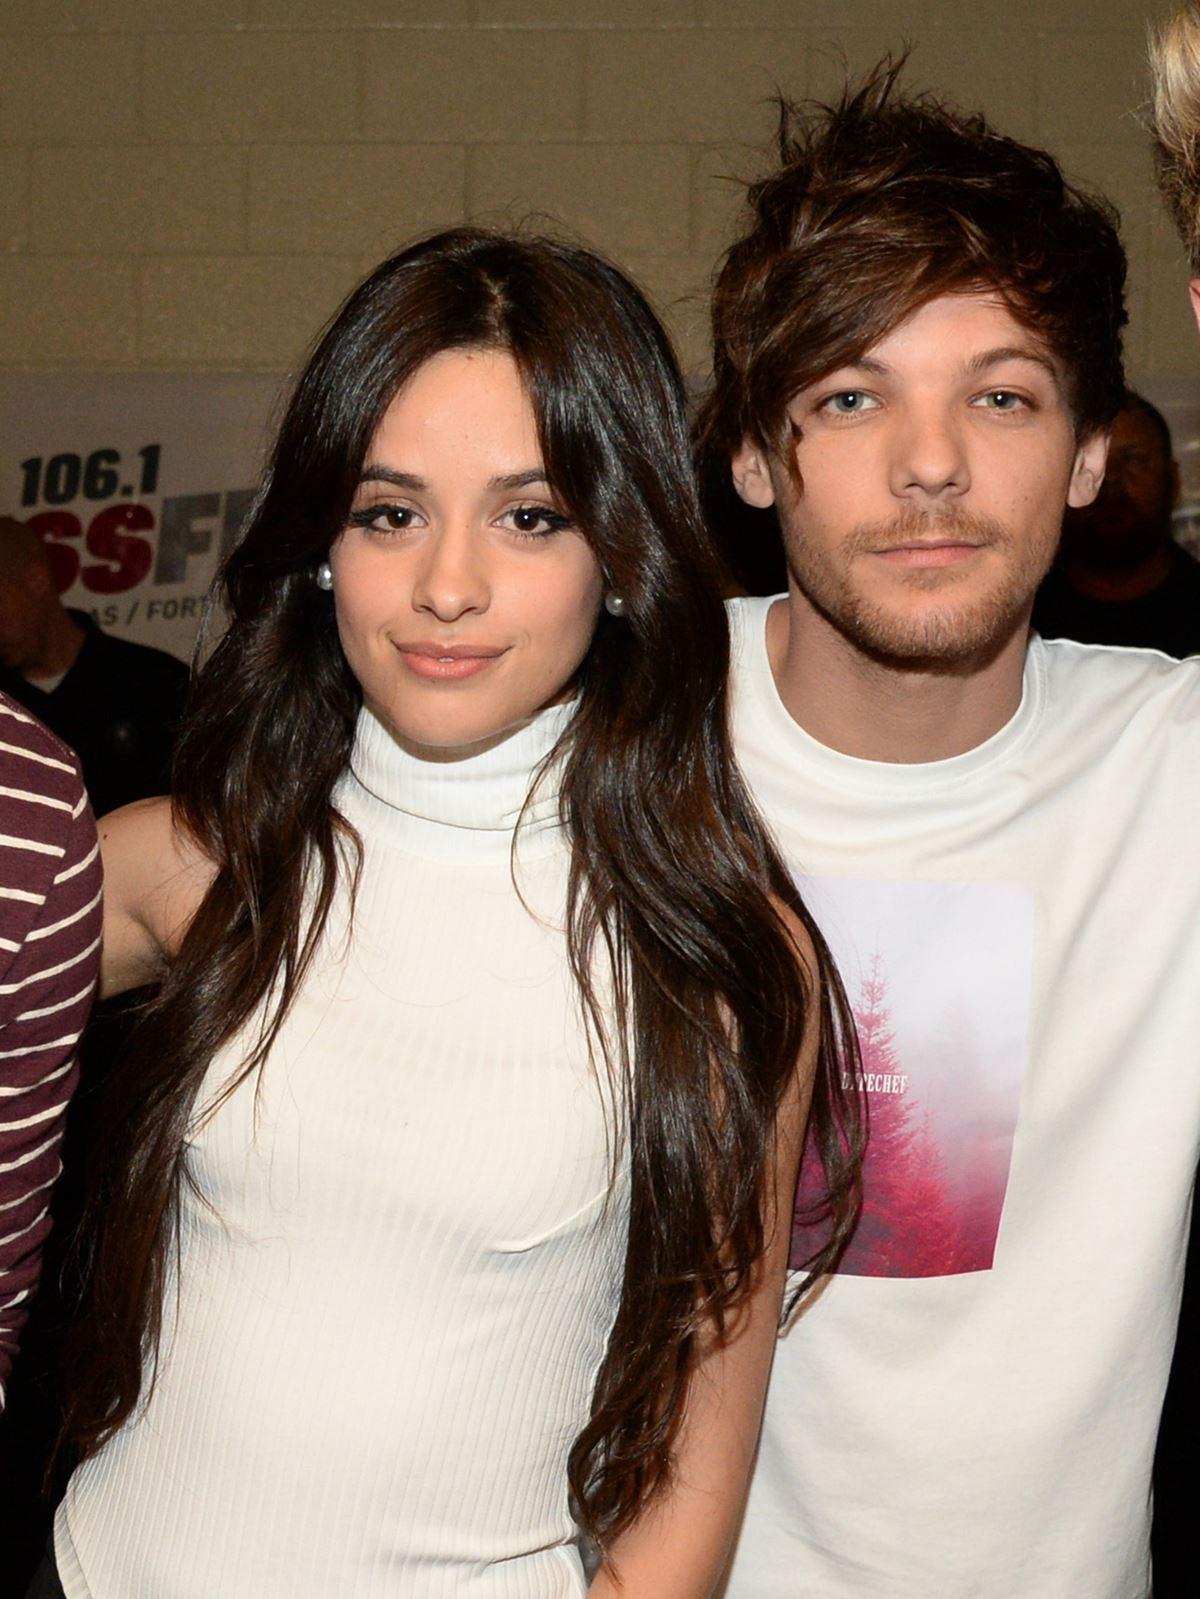 **Louis Tomlinson** After Louis and Camila were spotted outside of an LA nightclub together, the dating rumors were running rampant. Now, they couldn't run in more different social circles. Louis is currently dating his Eleanor Calder who he was in a relationship with years ago before he got together with Briana Jungwirth. He is a daddy to baby Freddie Tomlinson and is working with Steve Aoki to create some awesome solo music as One Direction continues their hiatus.